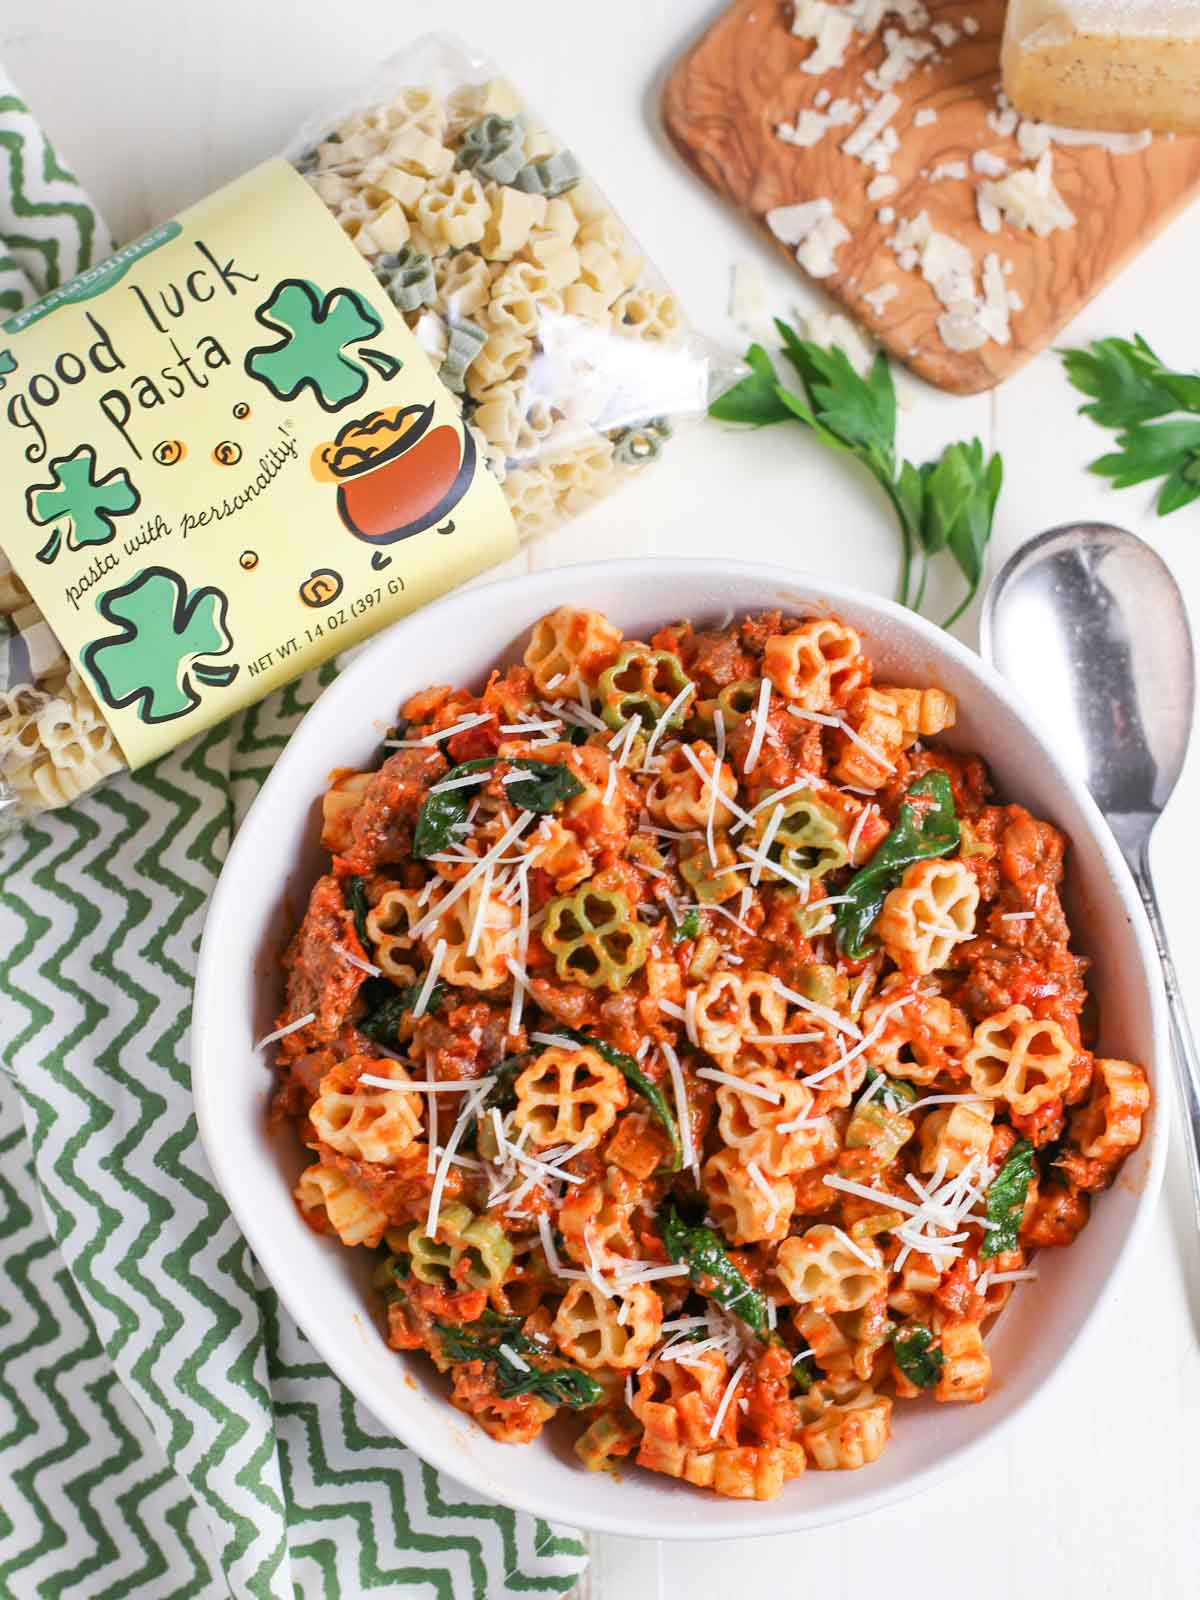 Pasta with Spicy Sausage and Tomato Cream Sauce